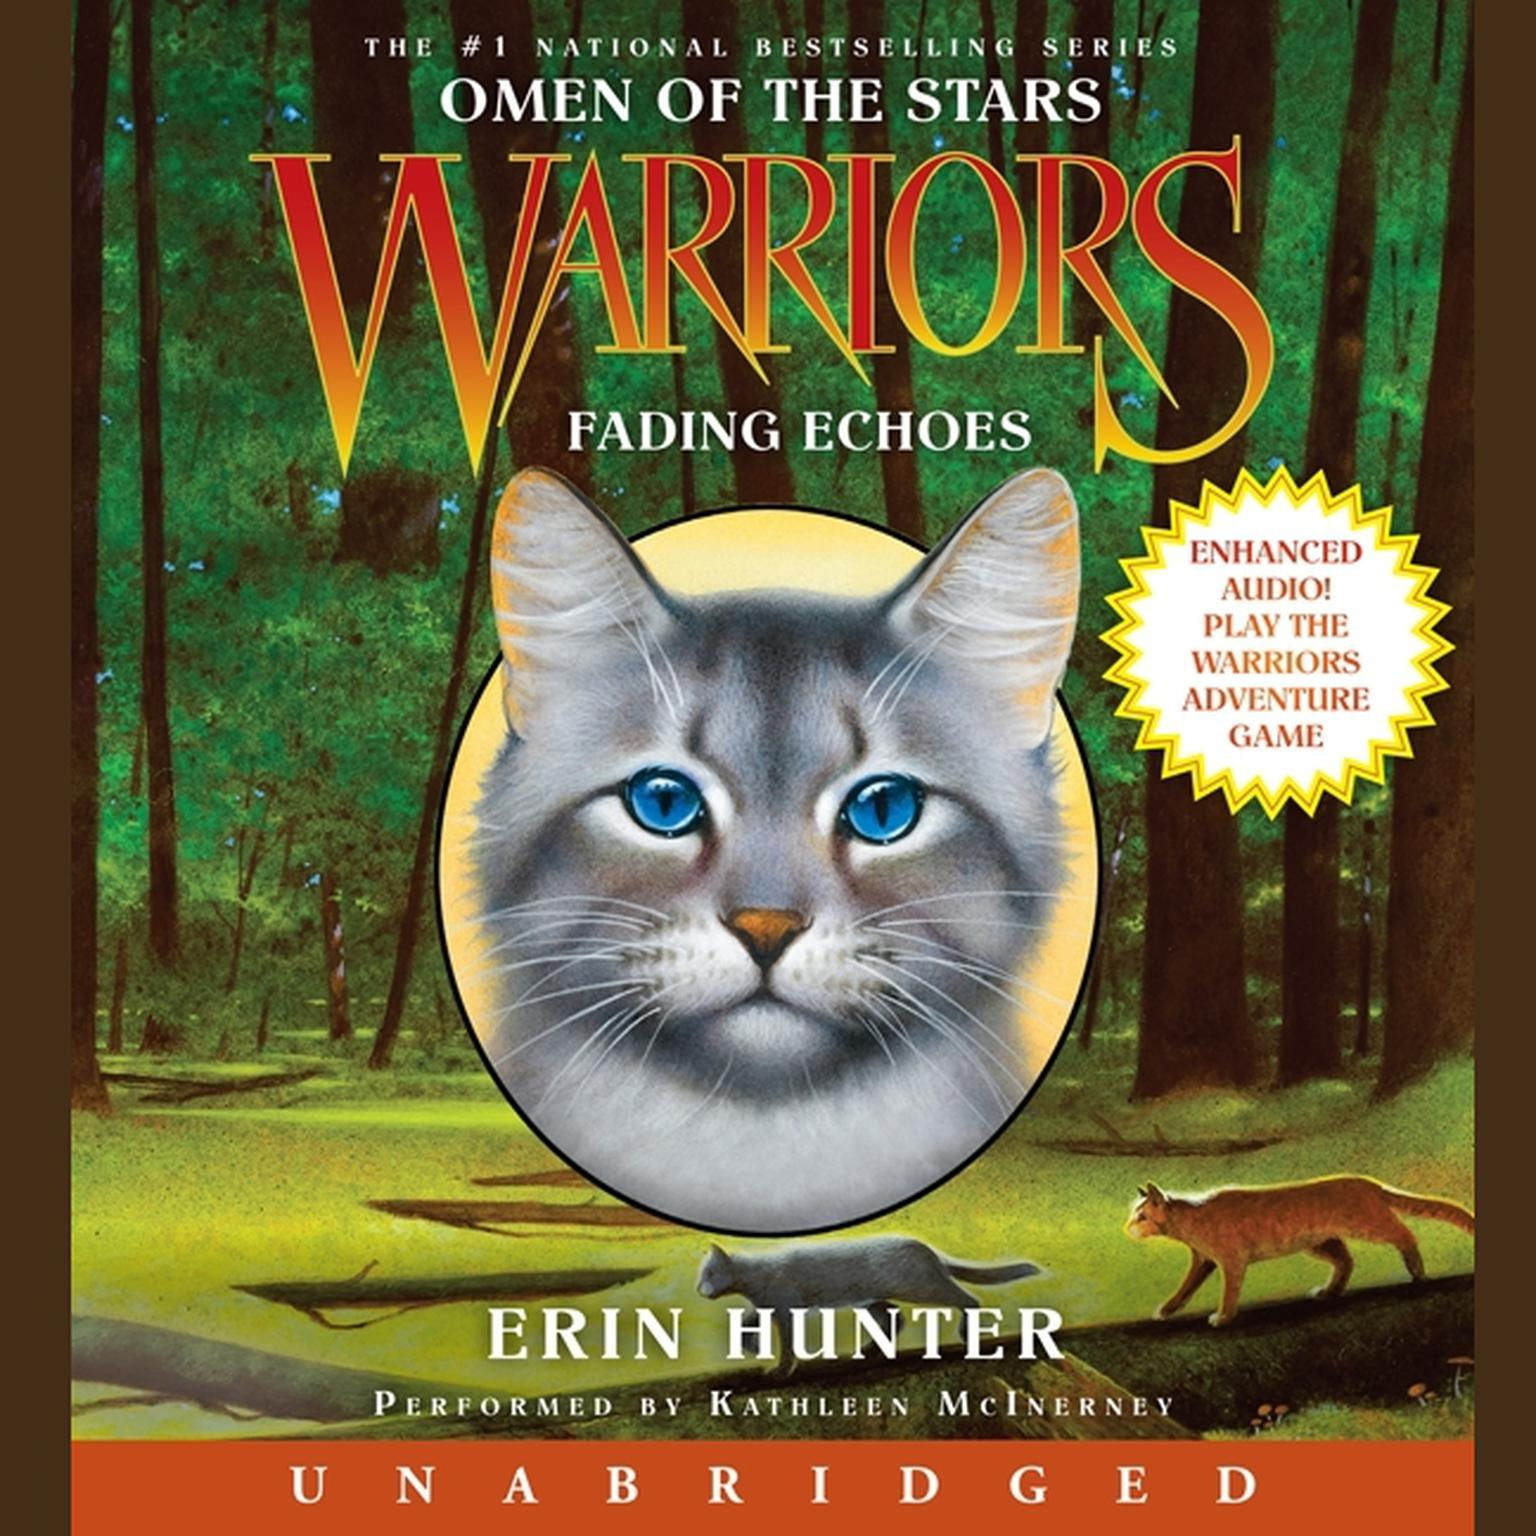 Printable Warriors: Omen of the Stars #2: Fading Echoes Audiobook Cover Art